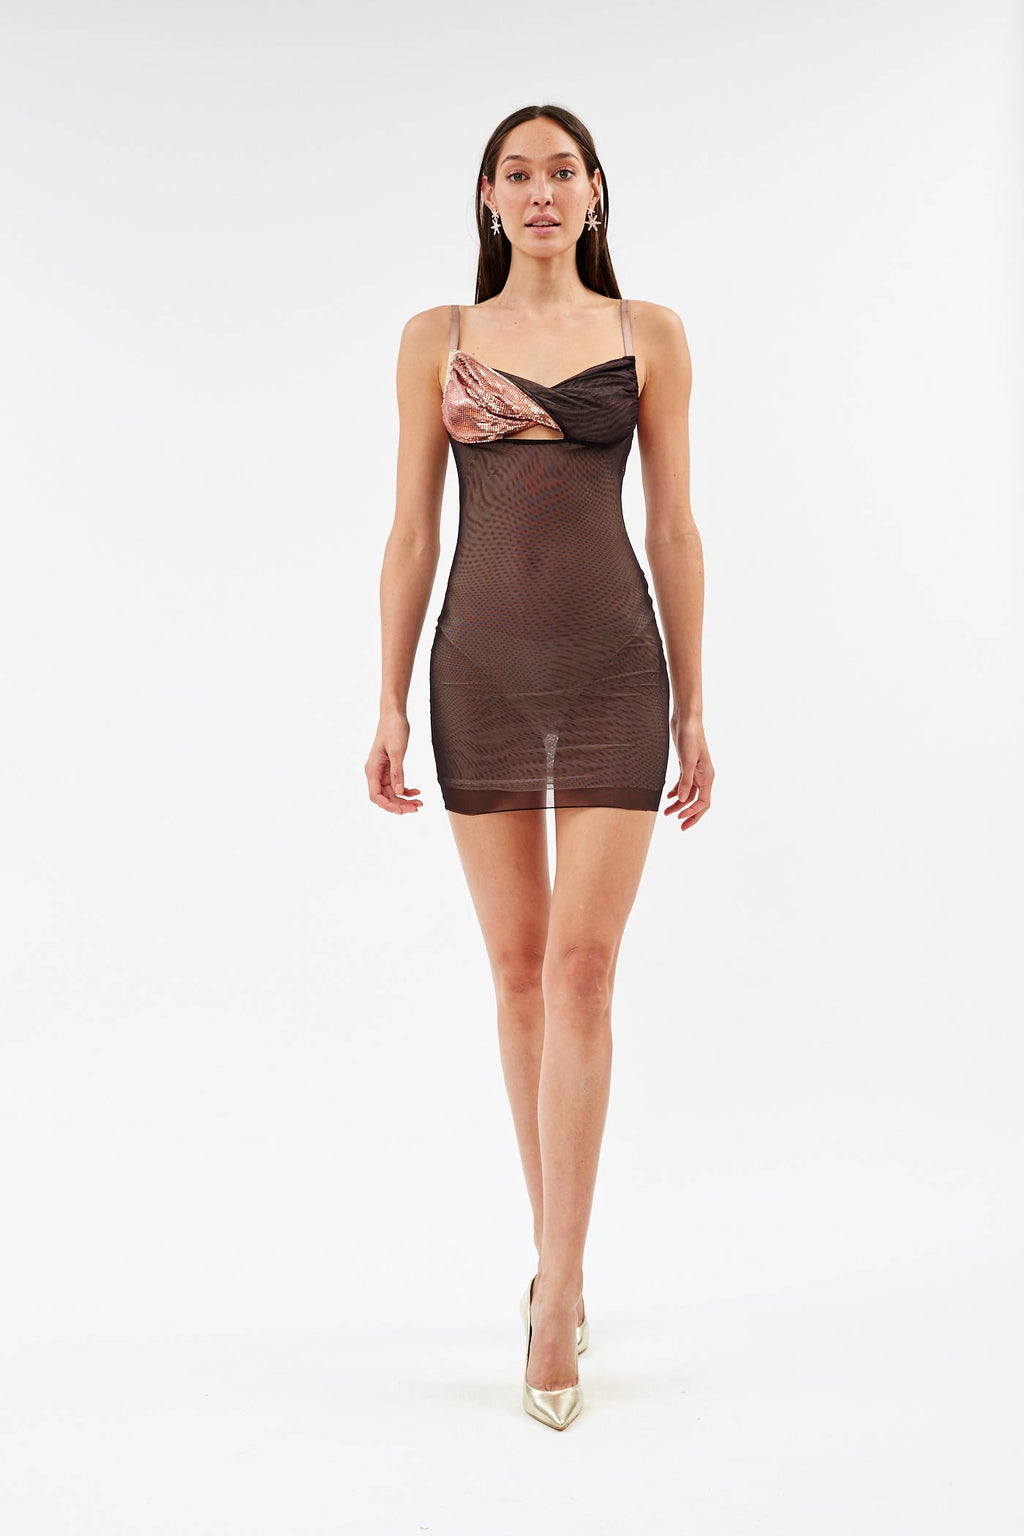 Titania Mahogany Mini Dress